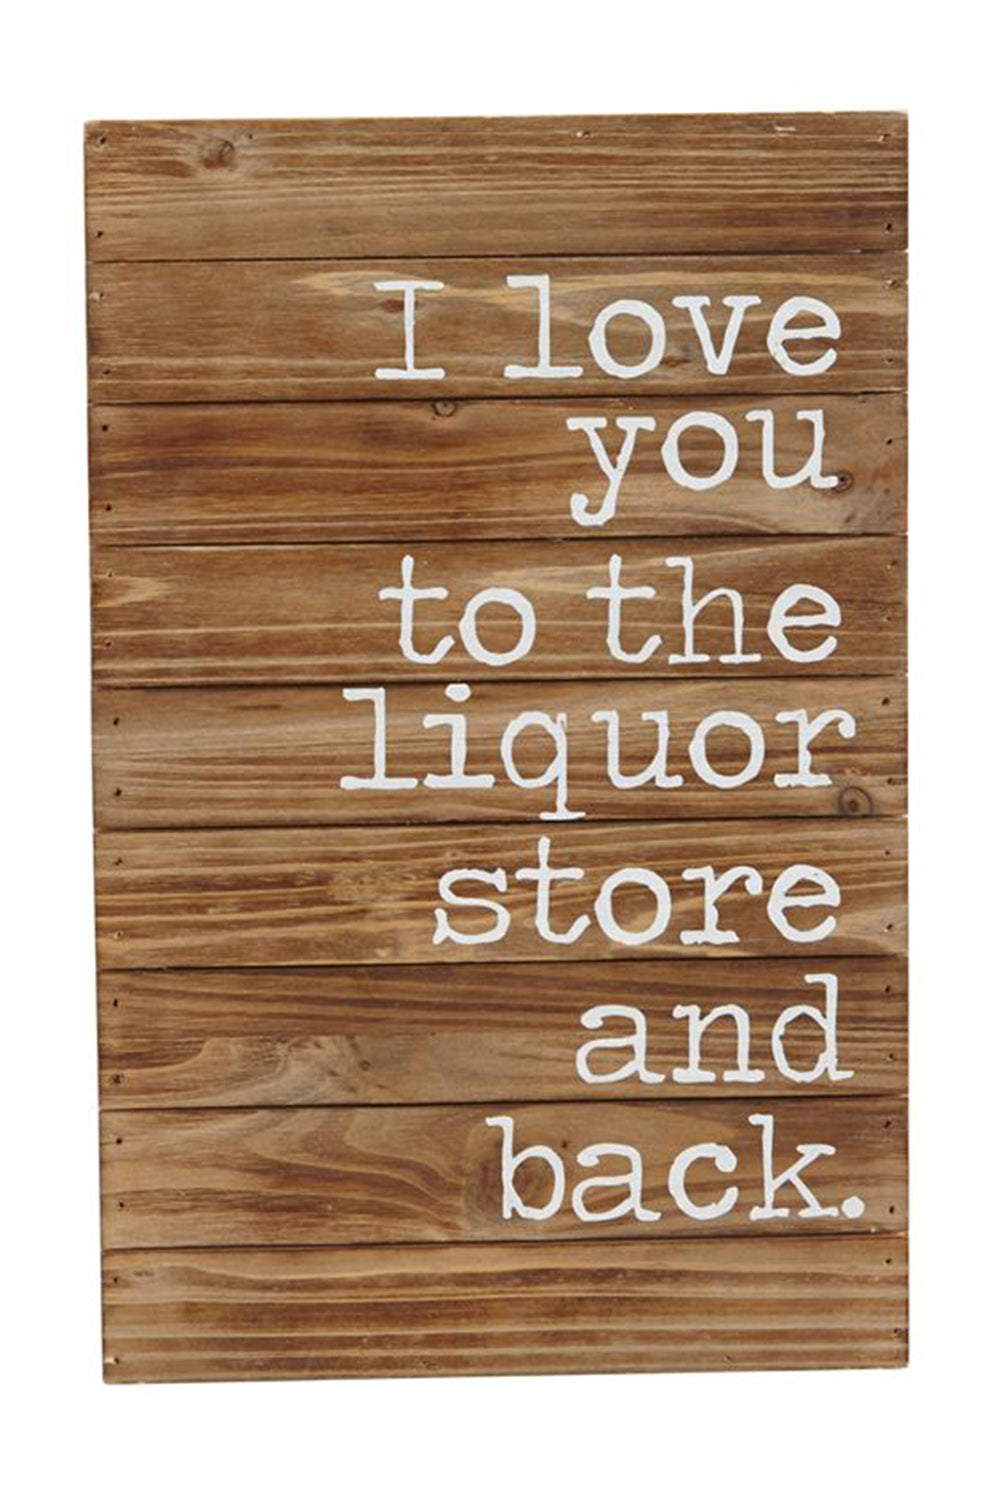 Liquor Store & Back Plaque